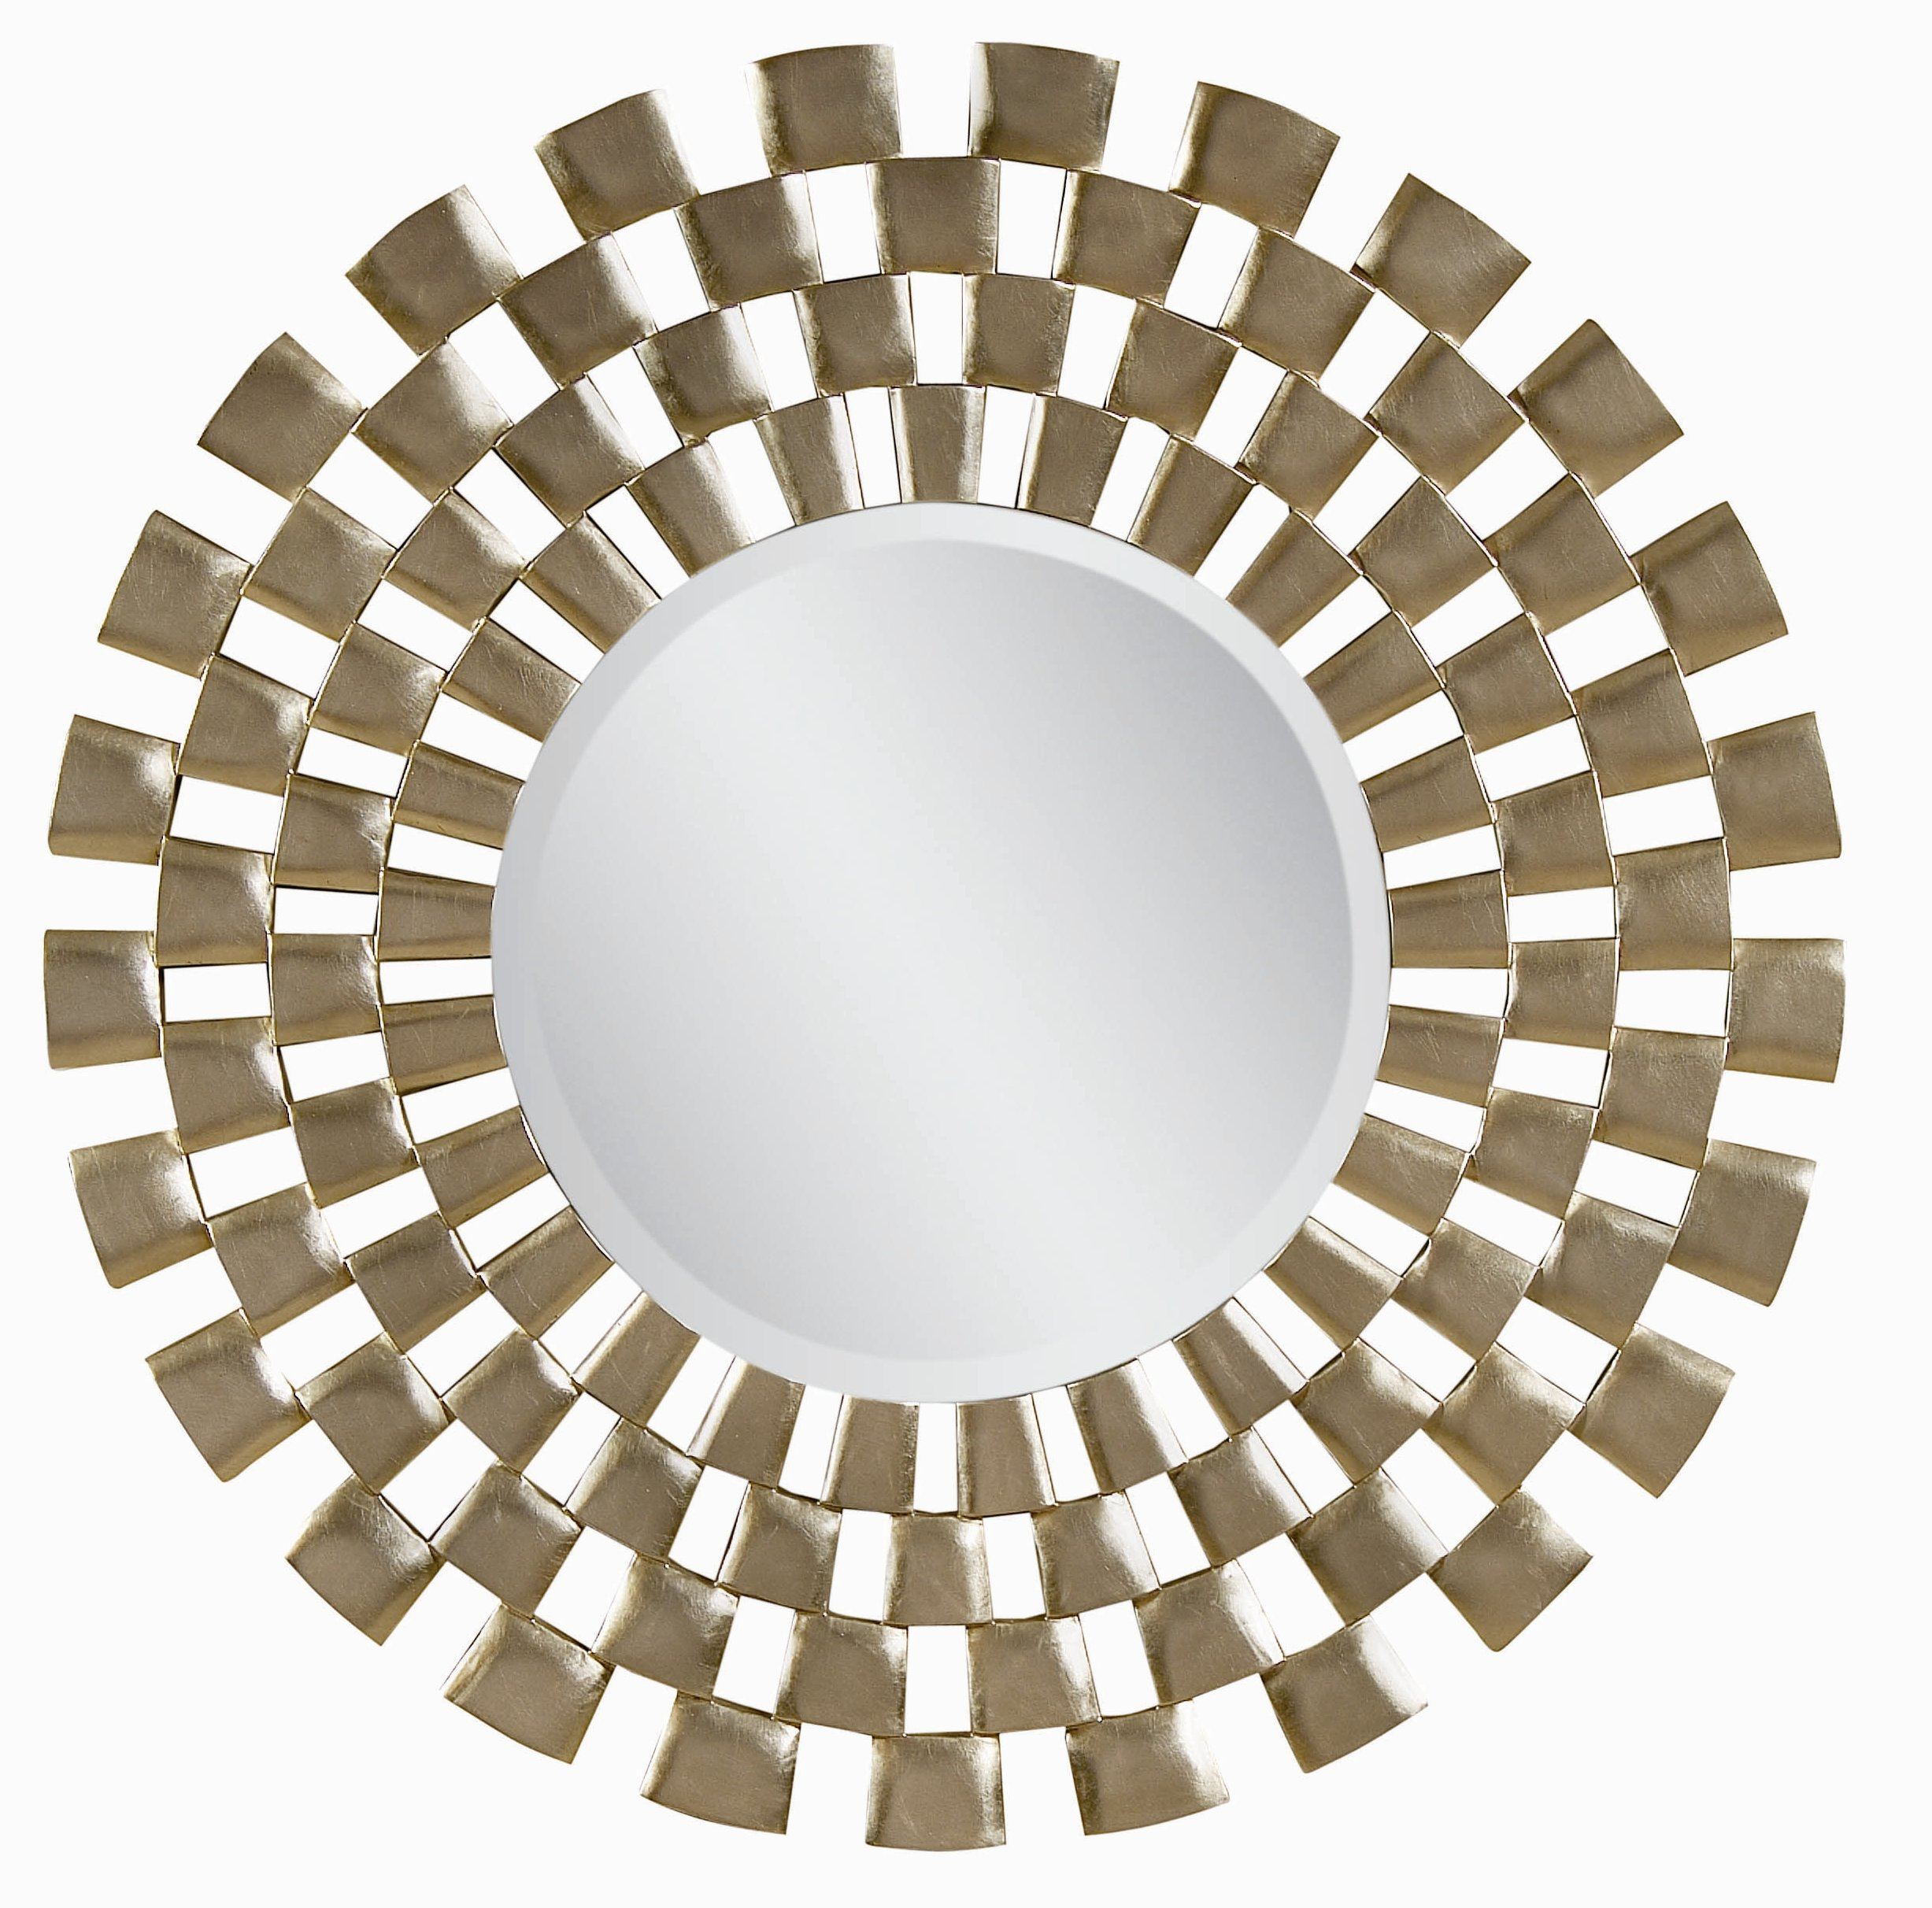 Leaf Wall Mirror | Wayfair With Regard To Carstens Sunburst Leaves Wall Mirrors (Image 14 of 20)